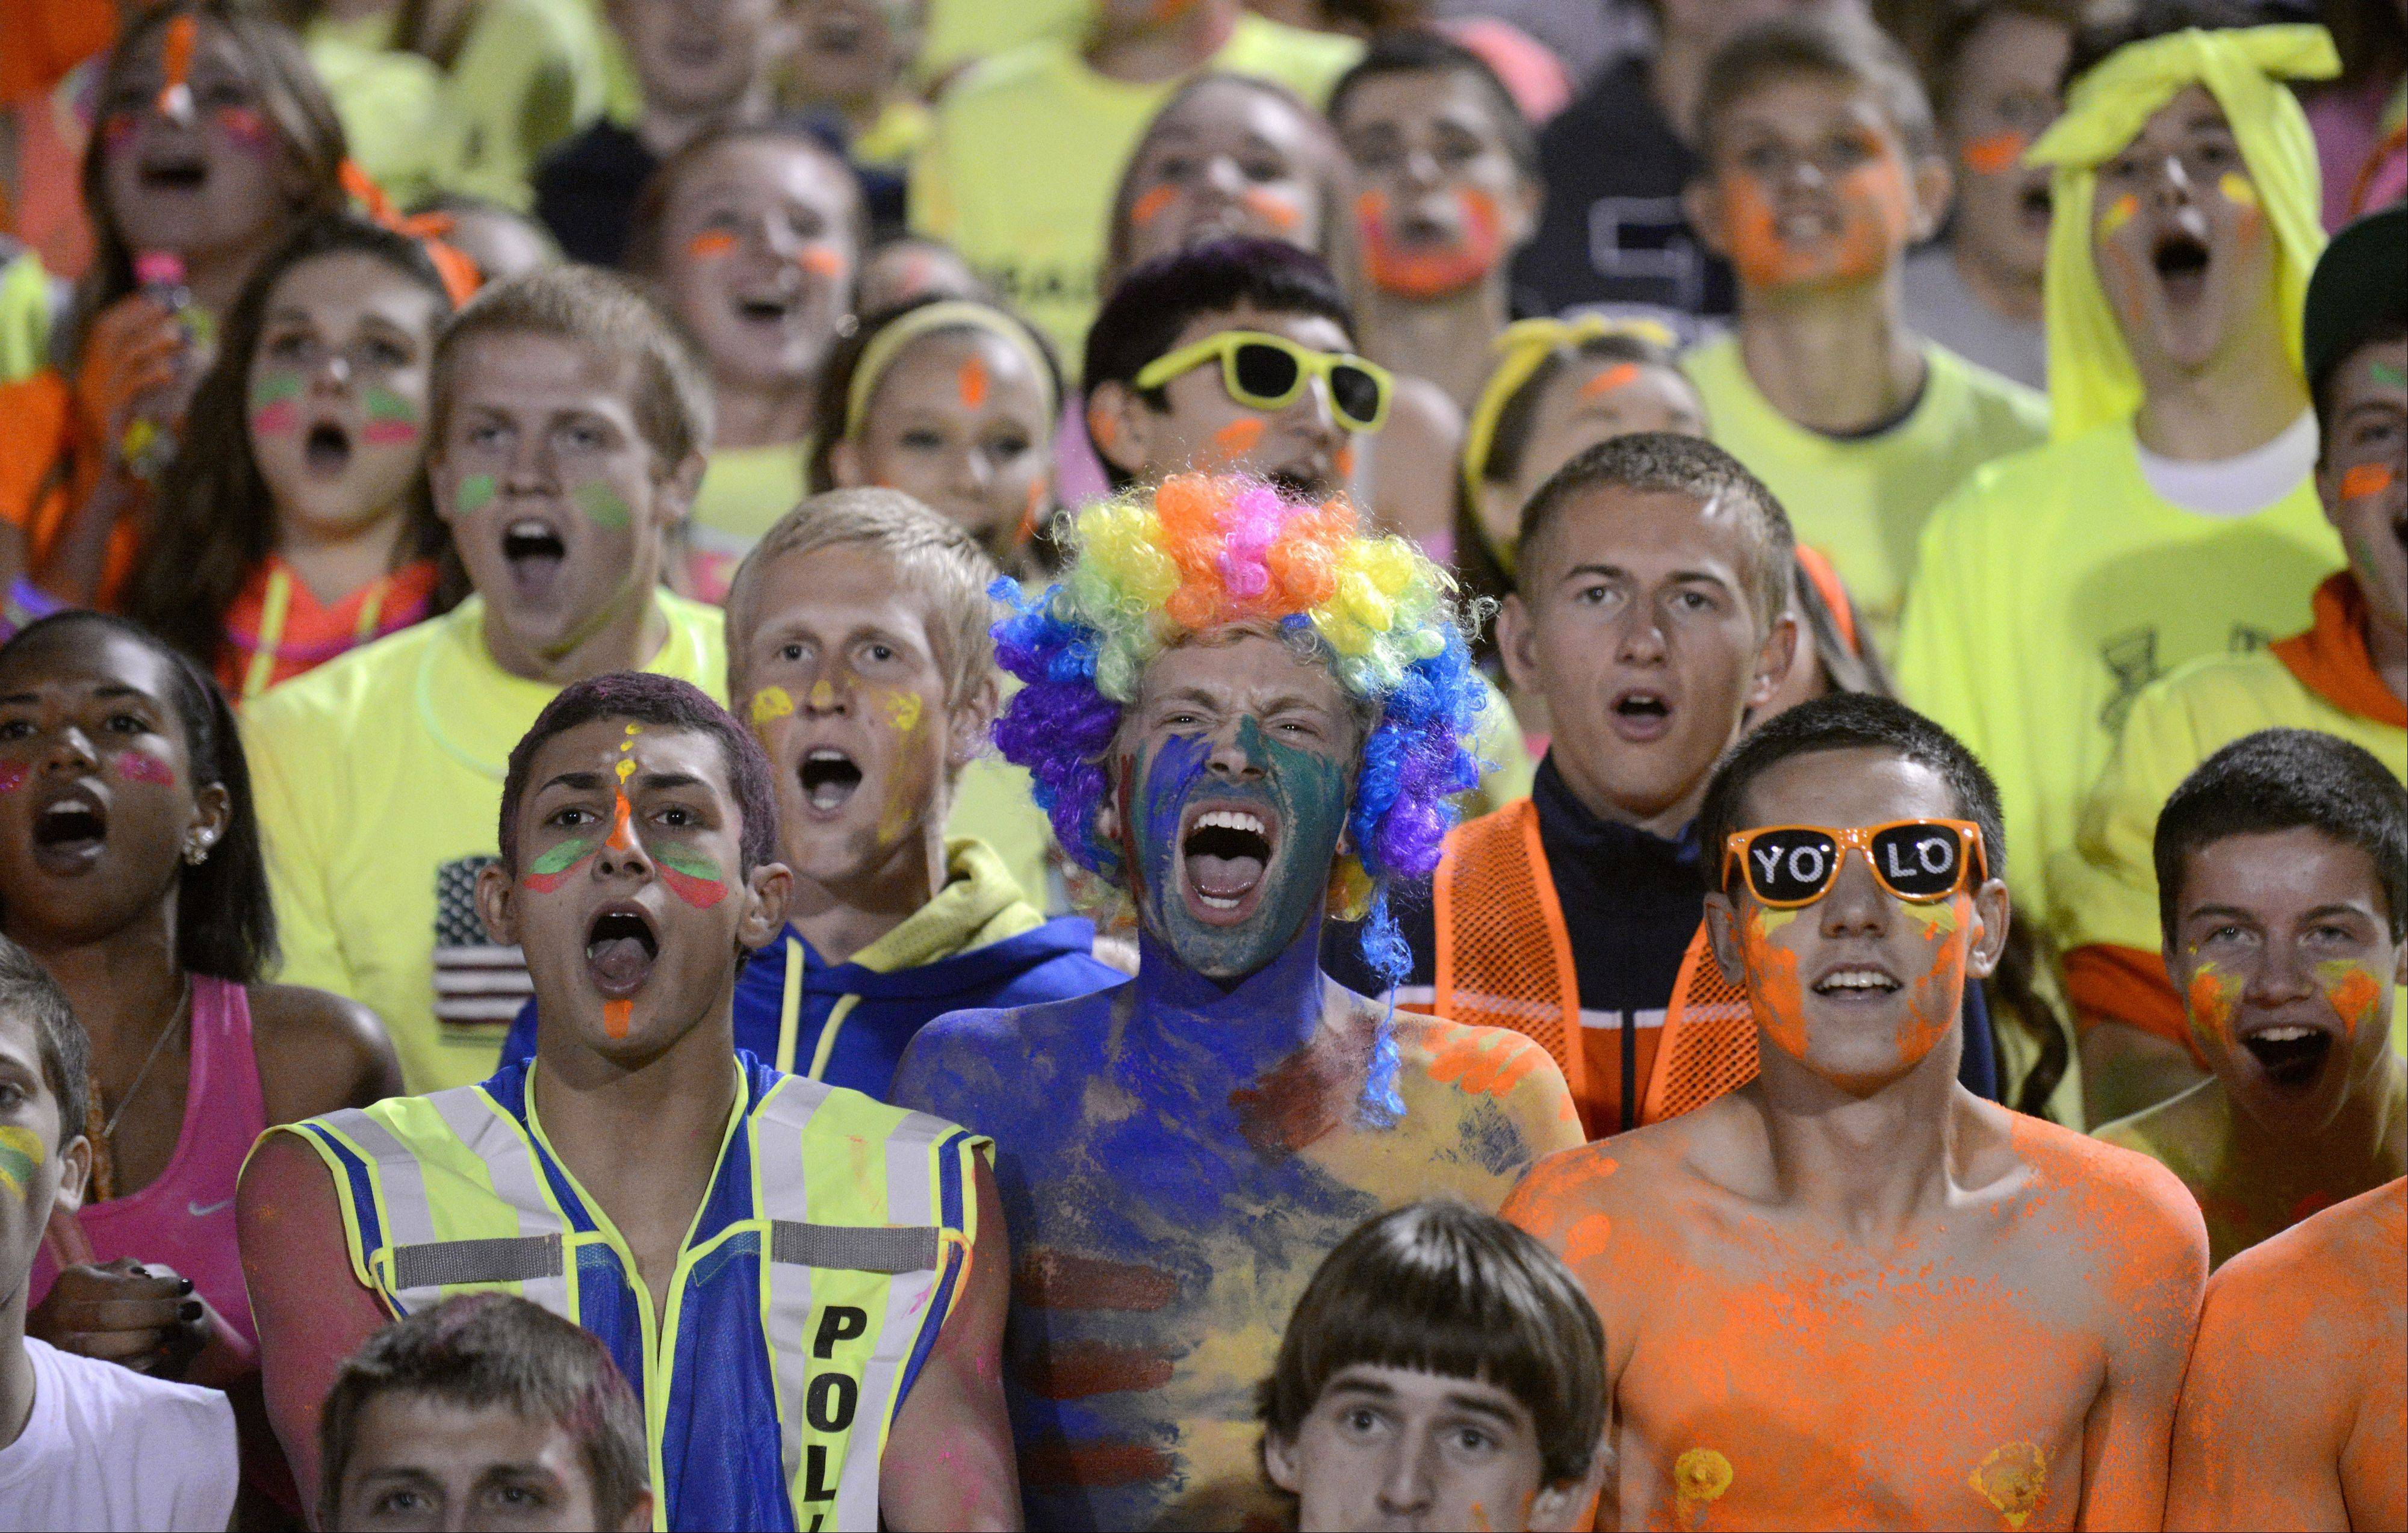 Cary-Grove fans Anthony Abbate, Charlie Price, and Kevin Cooke scream during the kick-off.